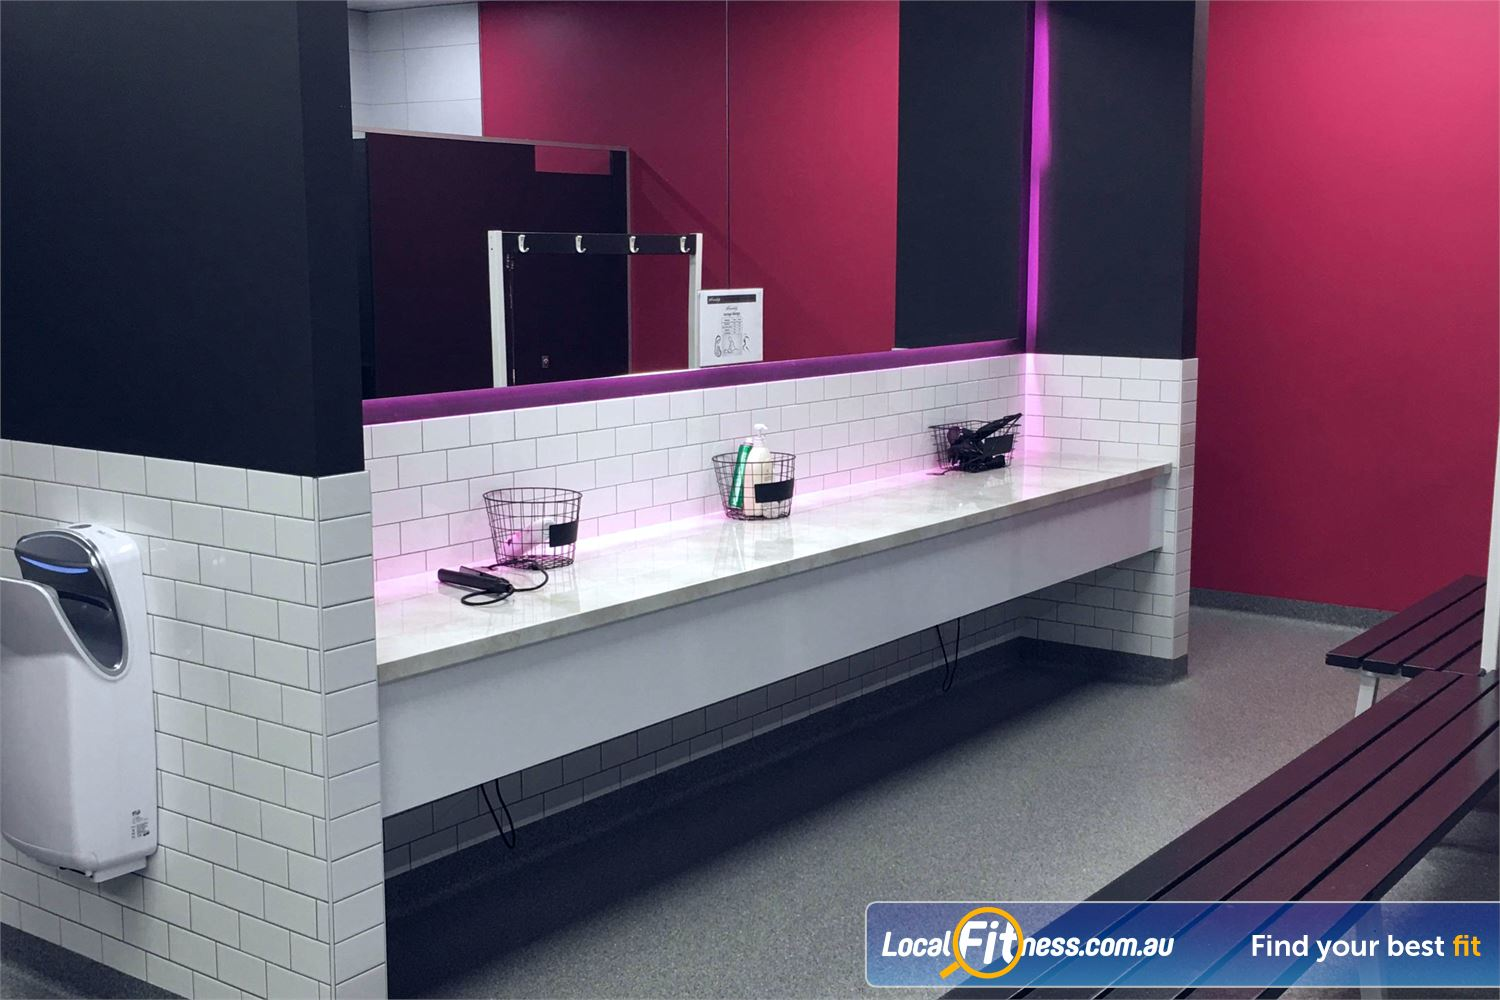 Fernwood Fitness Robina Pamper yourself with our hairdryer and hair straighteners.